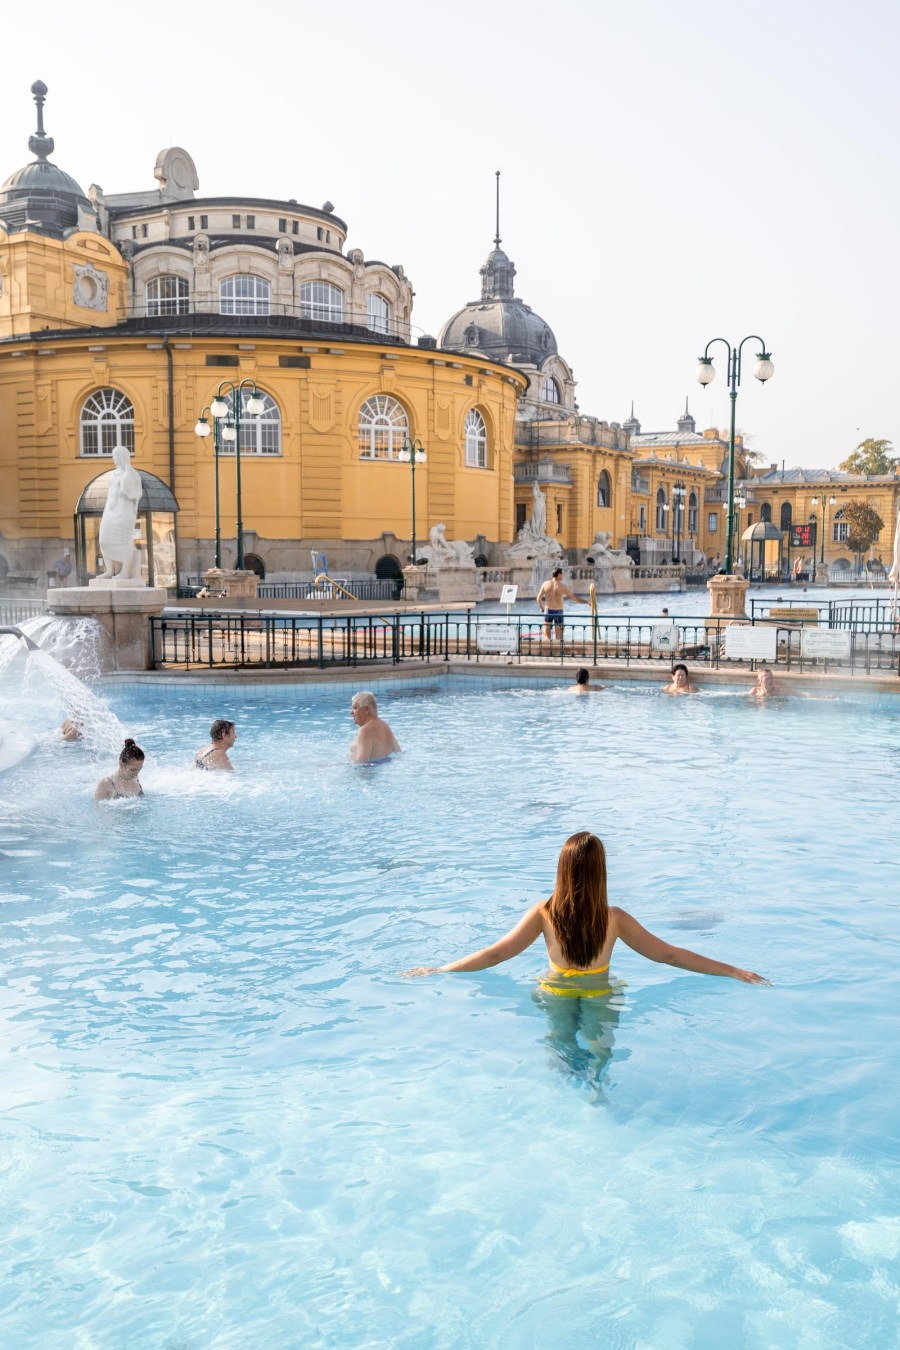 Girl in a yellow bikini standing in the pool in the Széchenyi Thermal Baths in Budapest